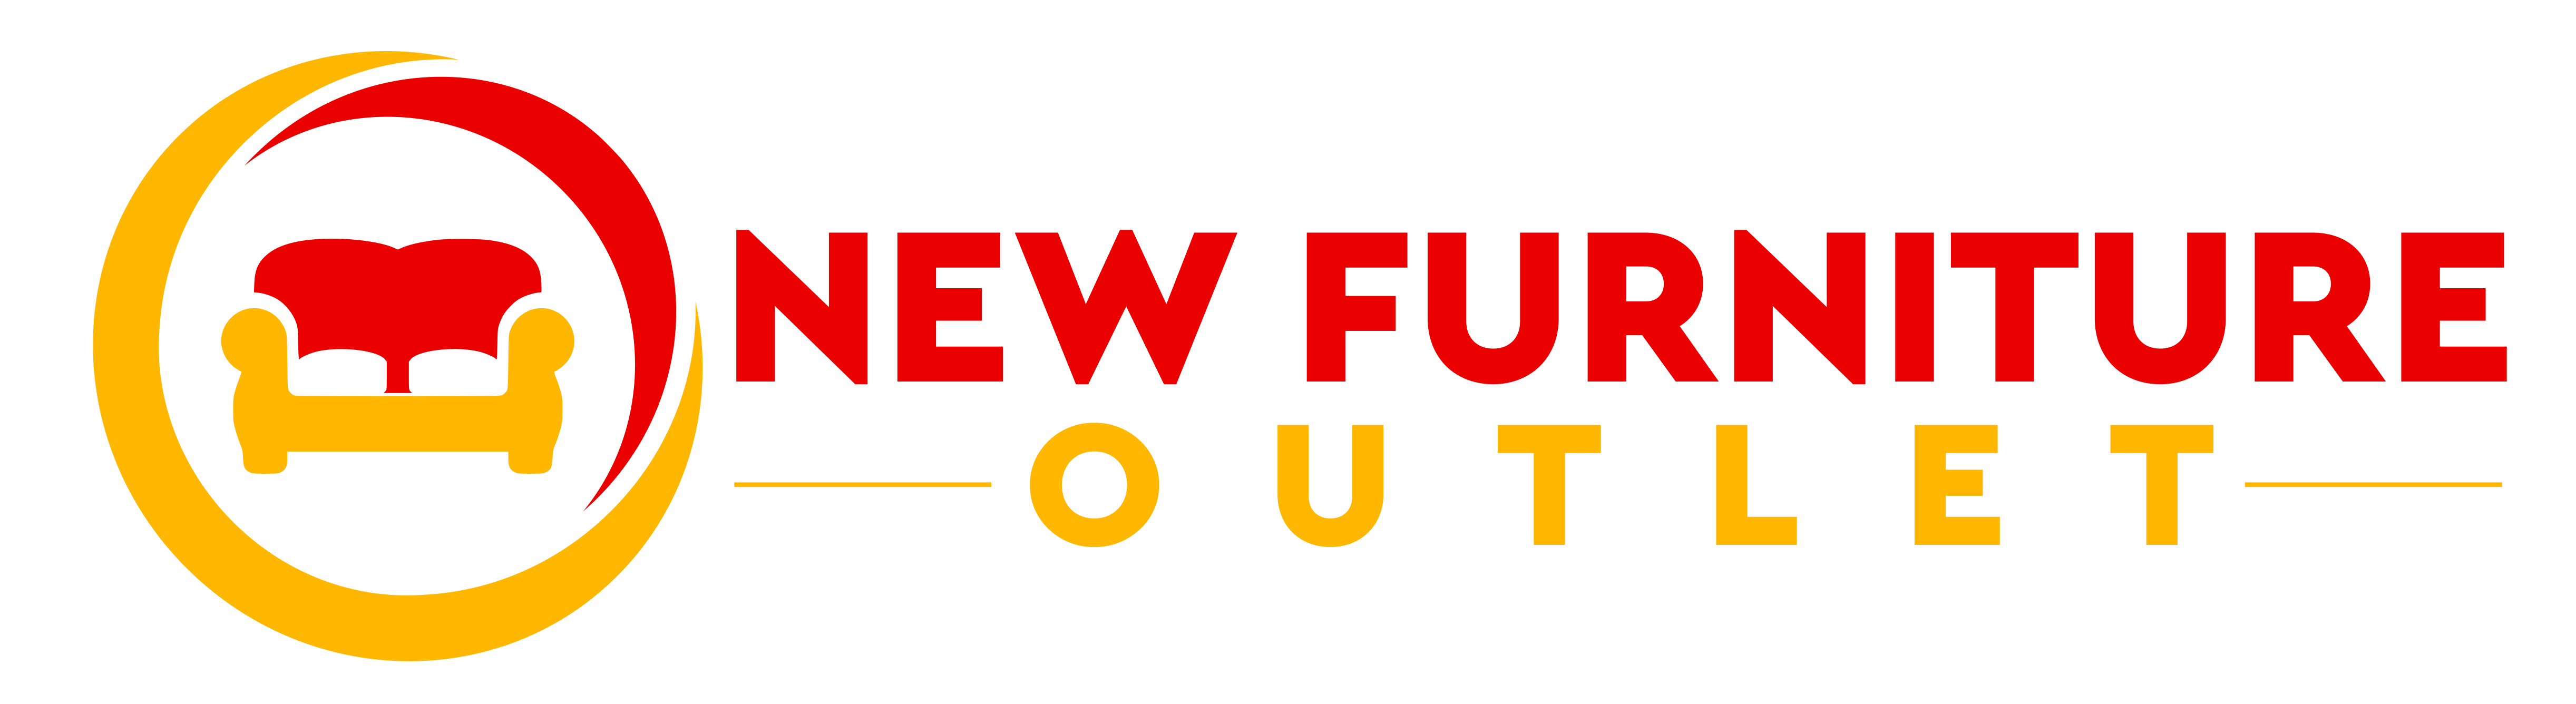 New Furniture Outlet